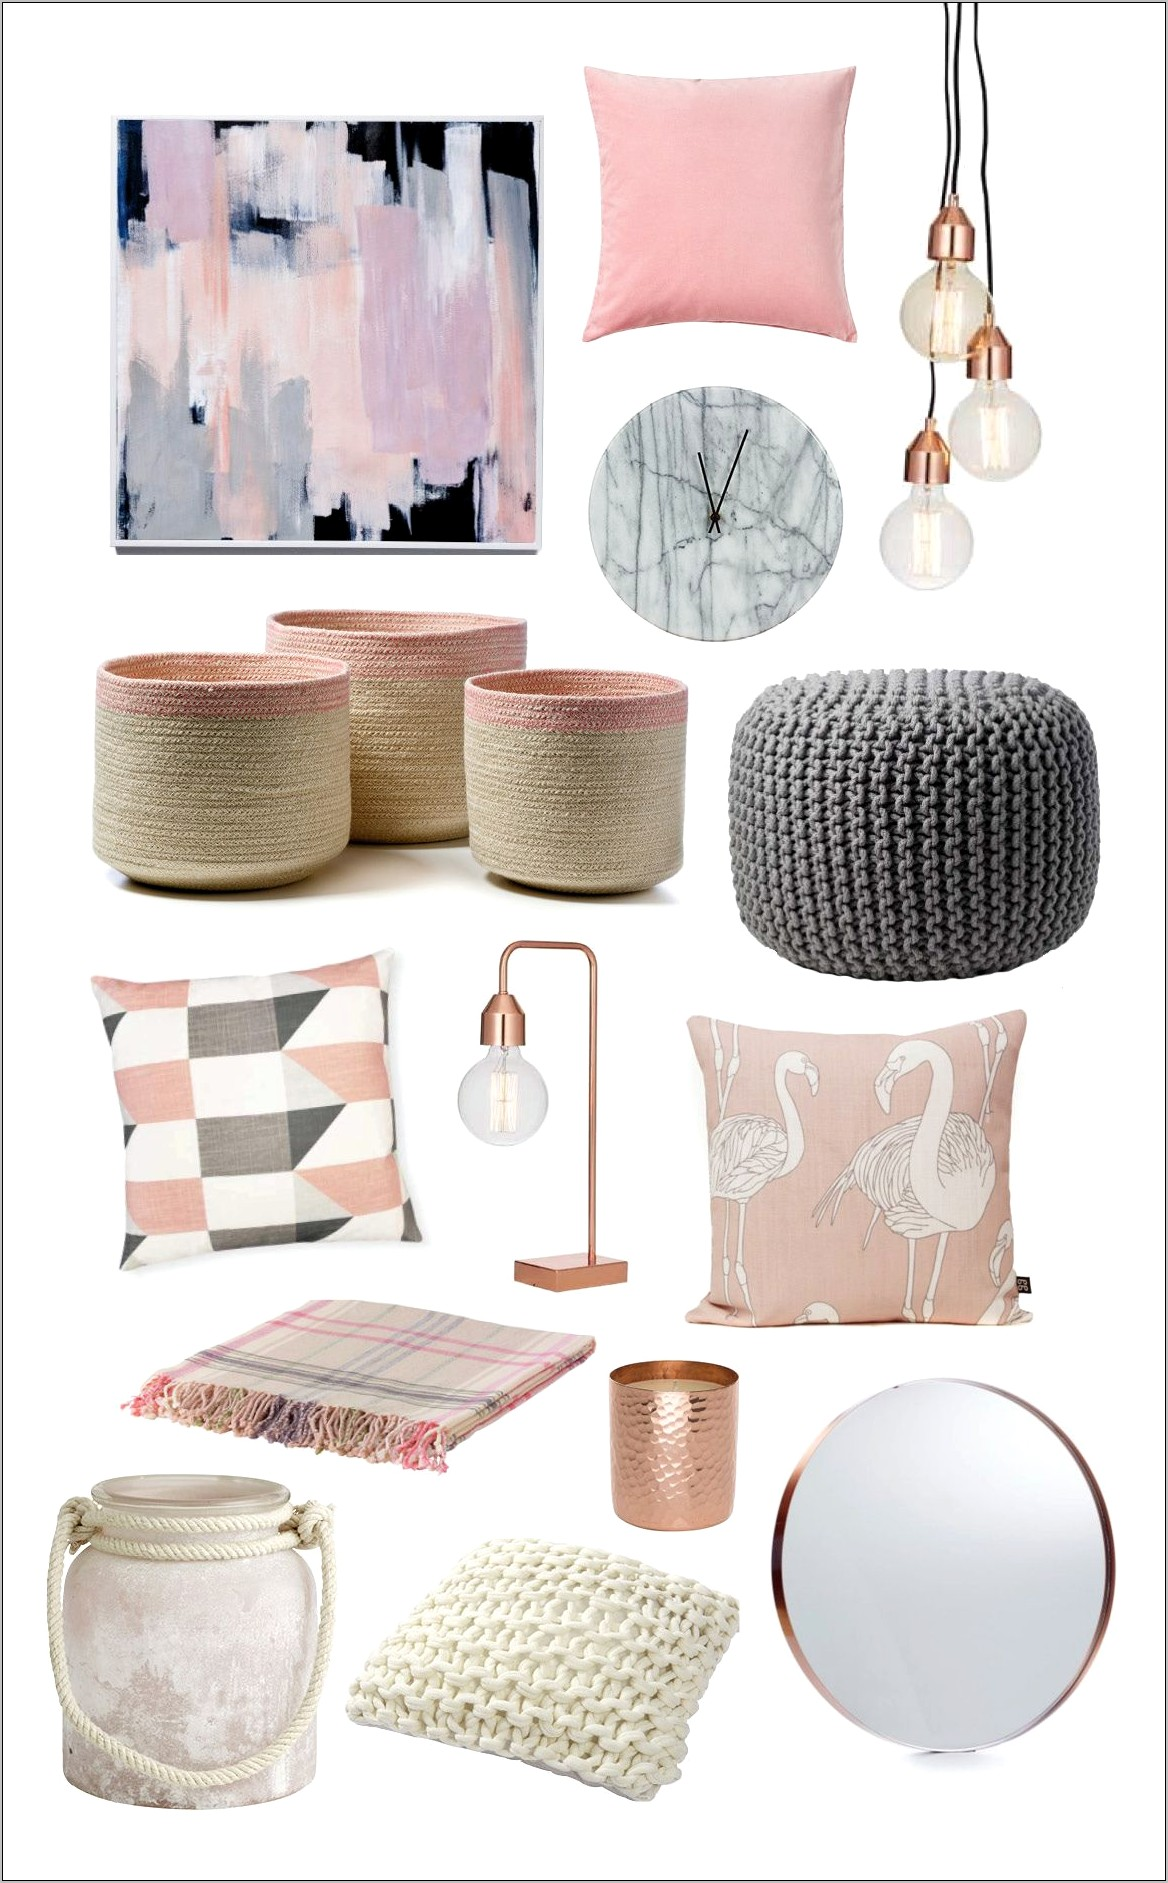 Pink Kitchen Decor Items